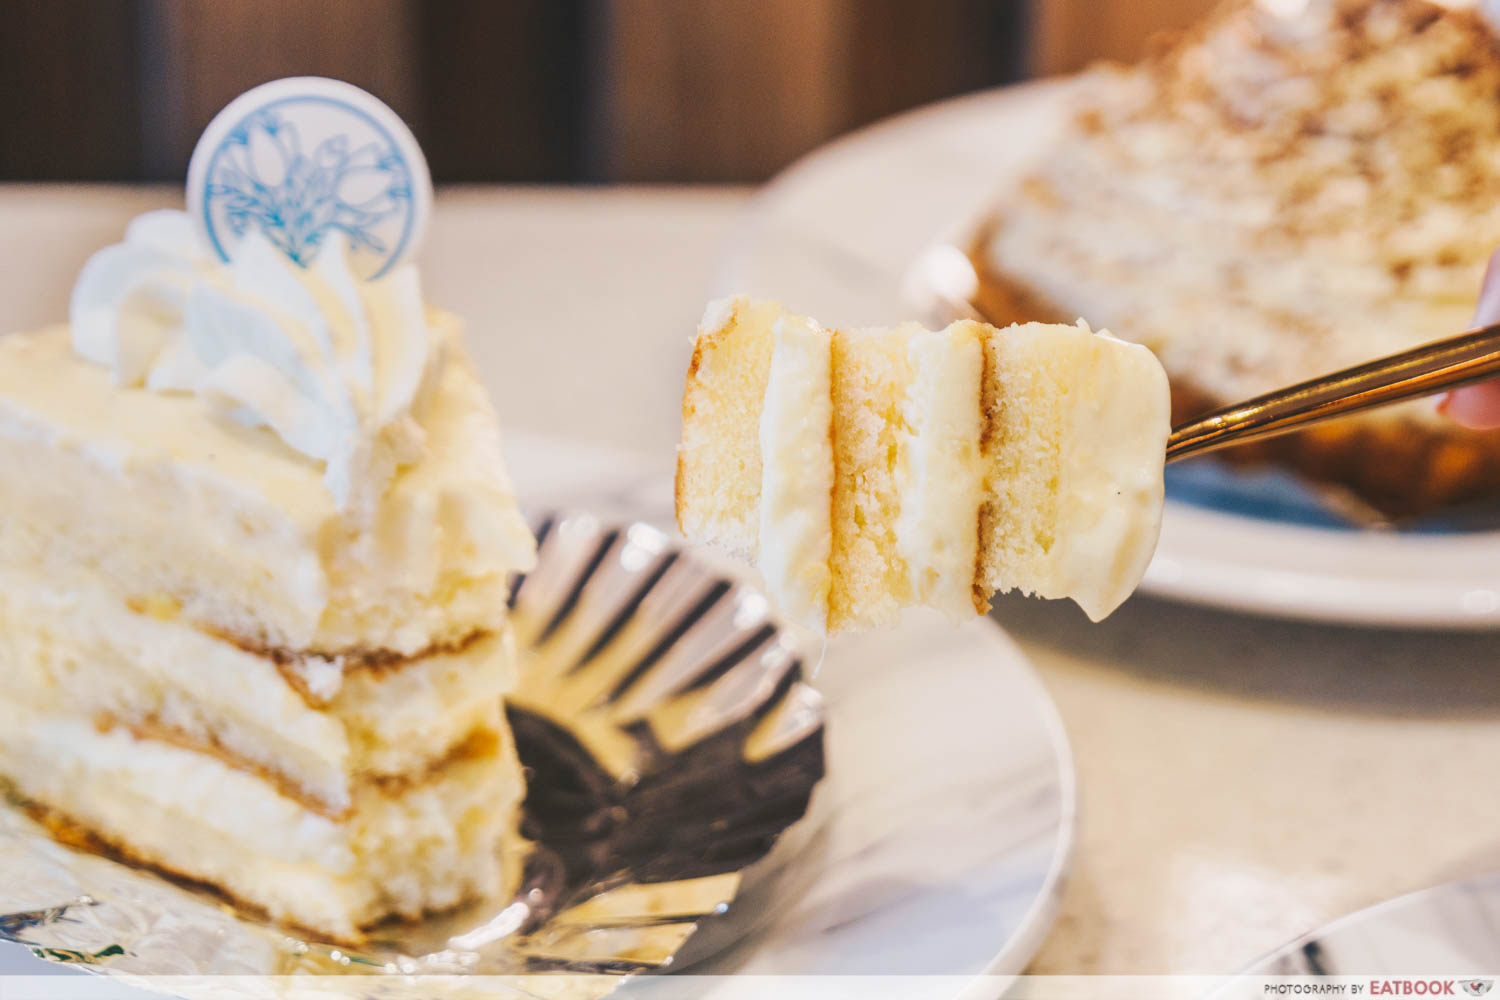 Durian Lab Cafe - Durian shortcake